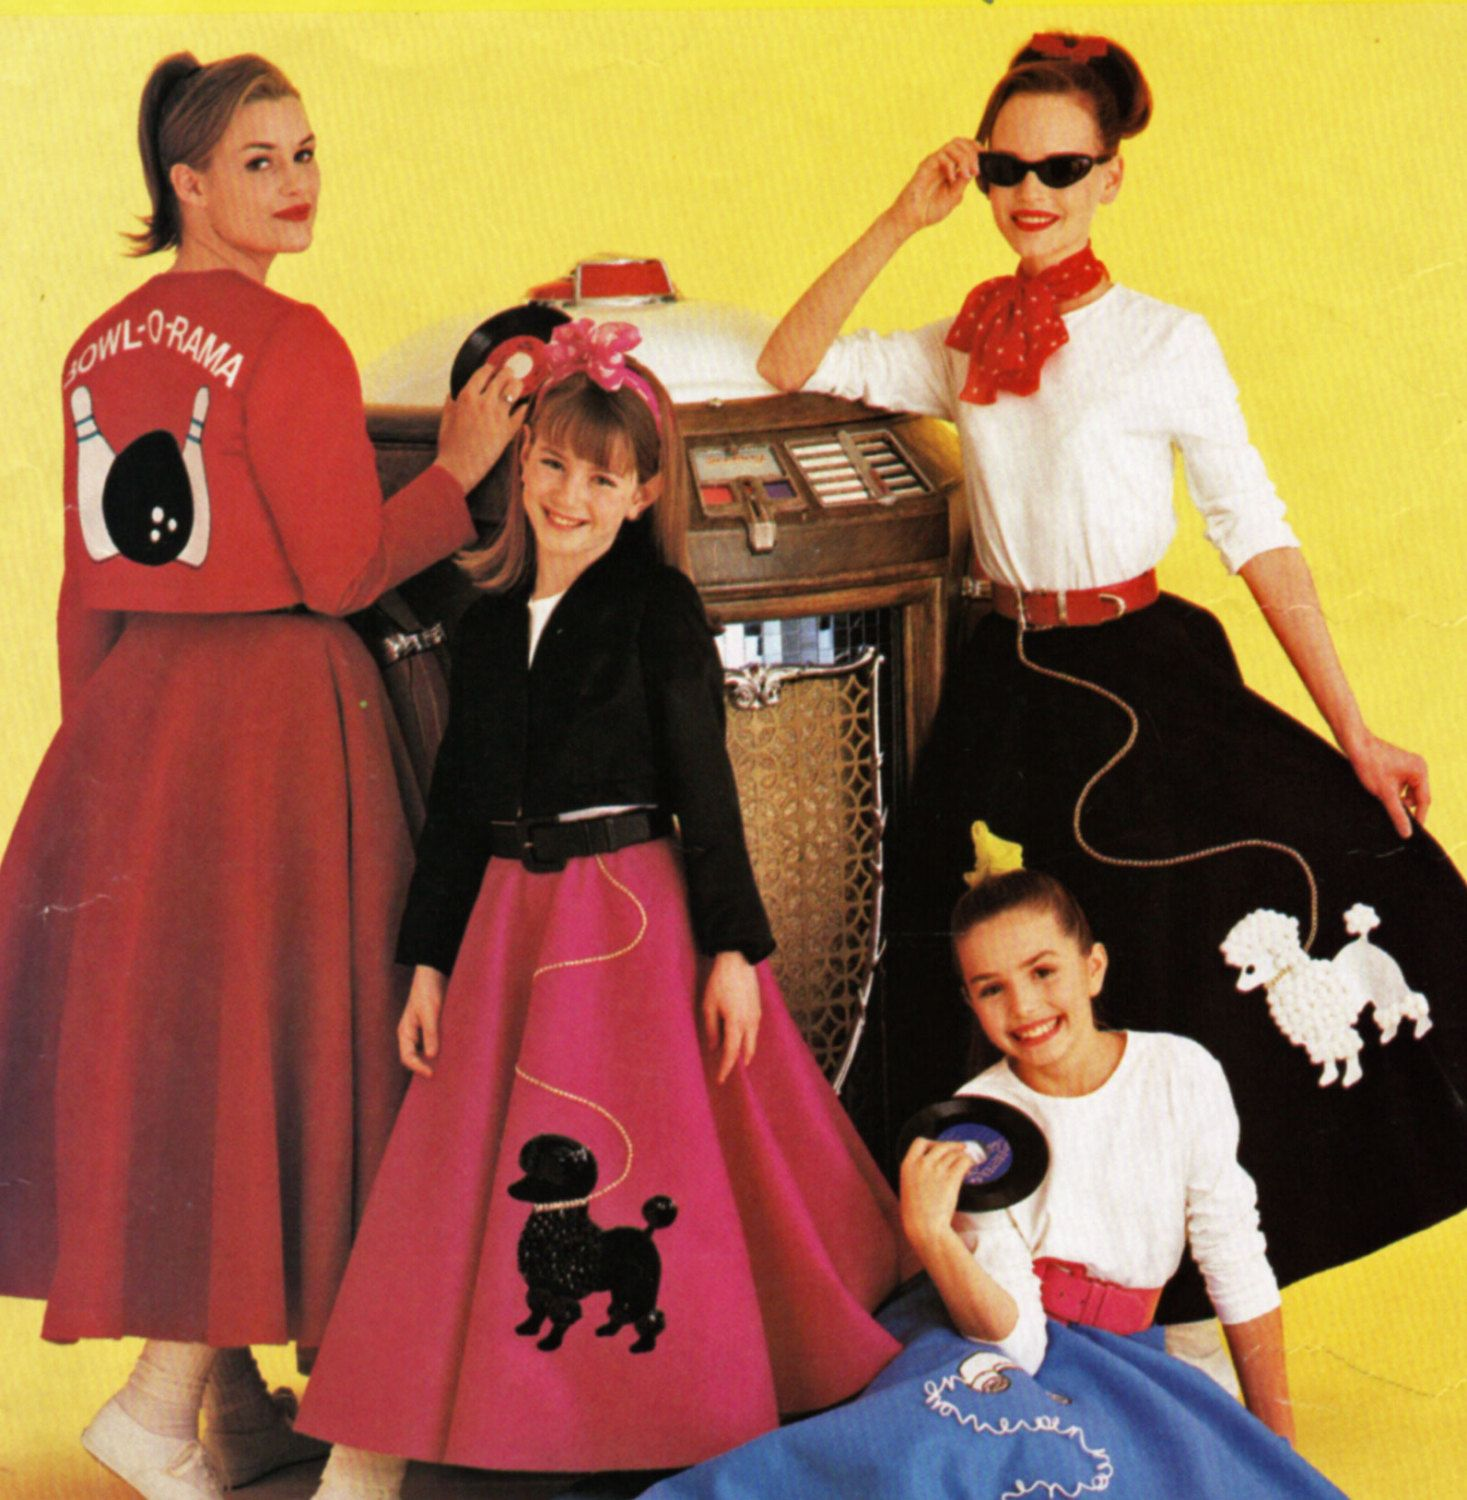 Misses Or Womens Retro Happy Days Era Sock Hop Bobby Socks Halloween Costume Pattern Including Poodle Skirt And Telephone Appliques